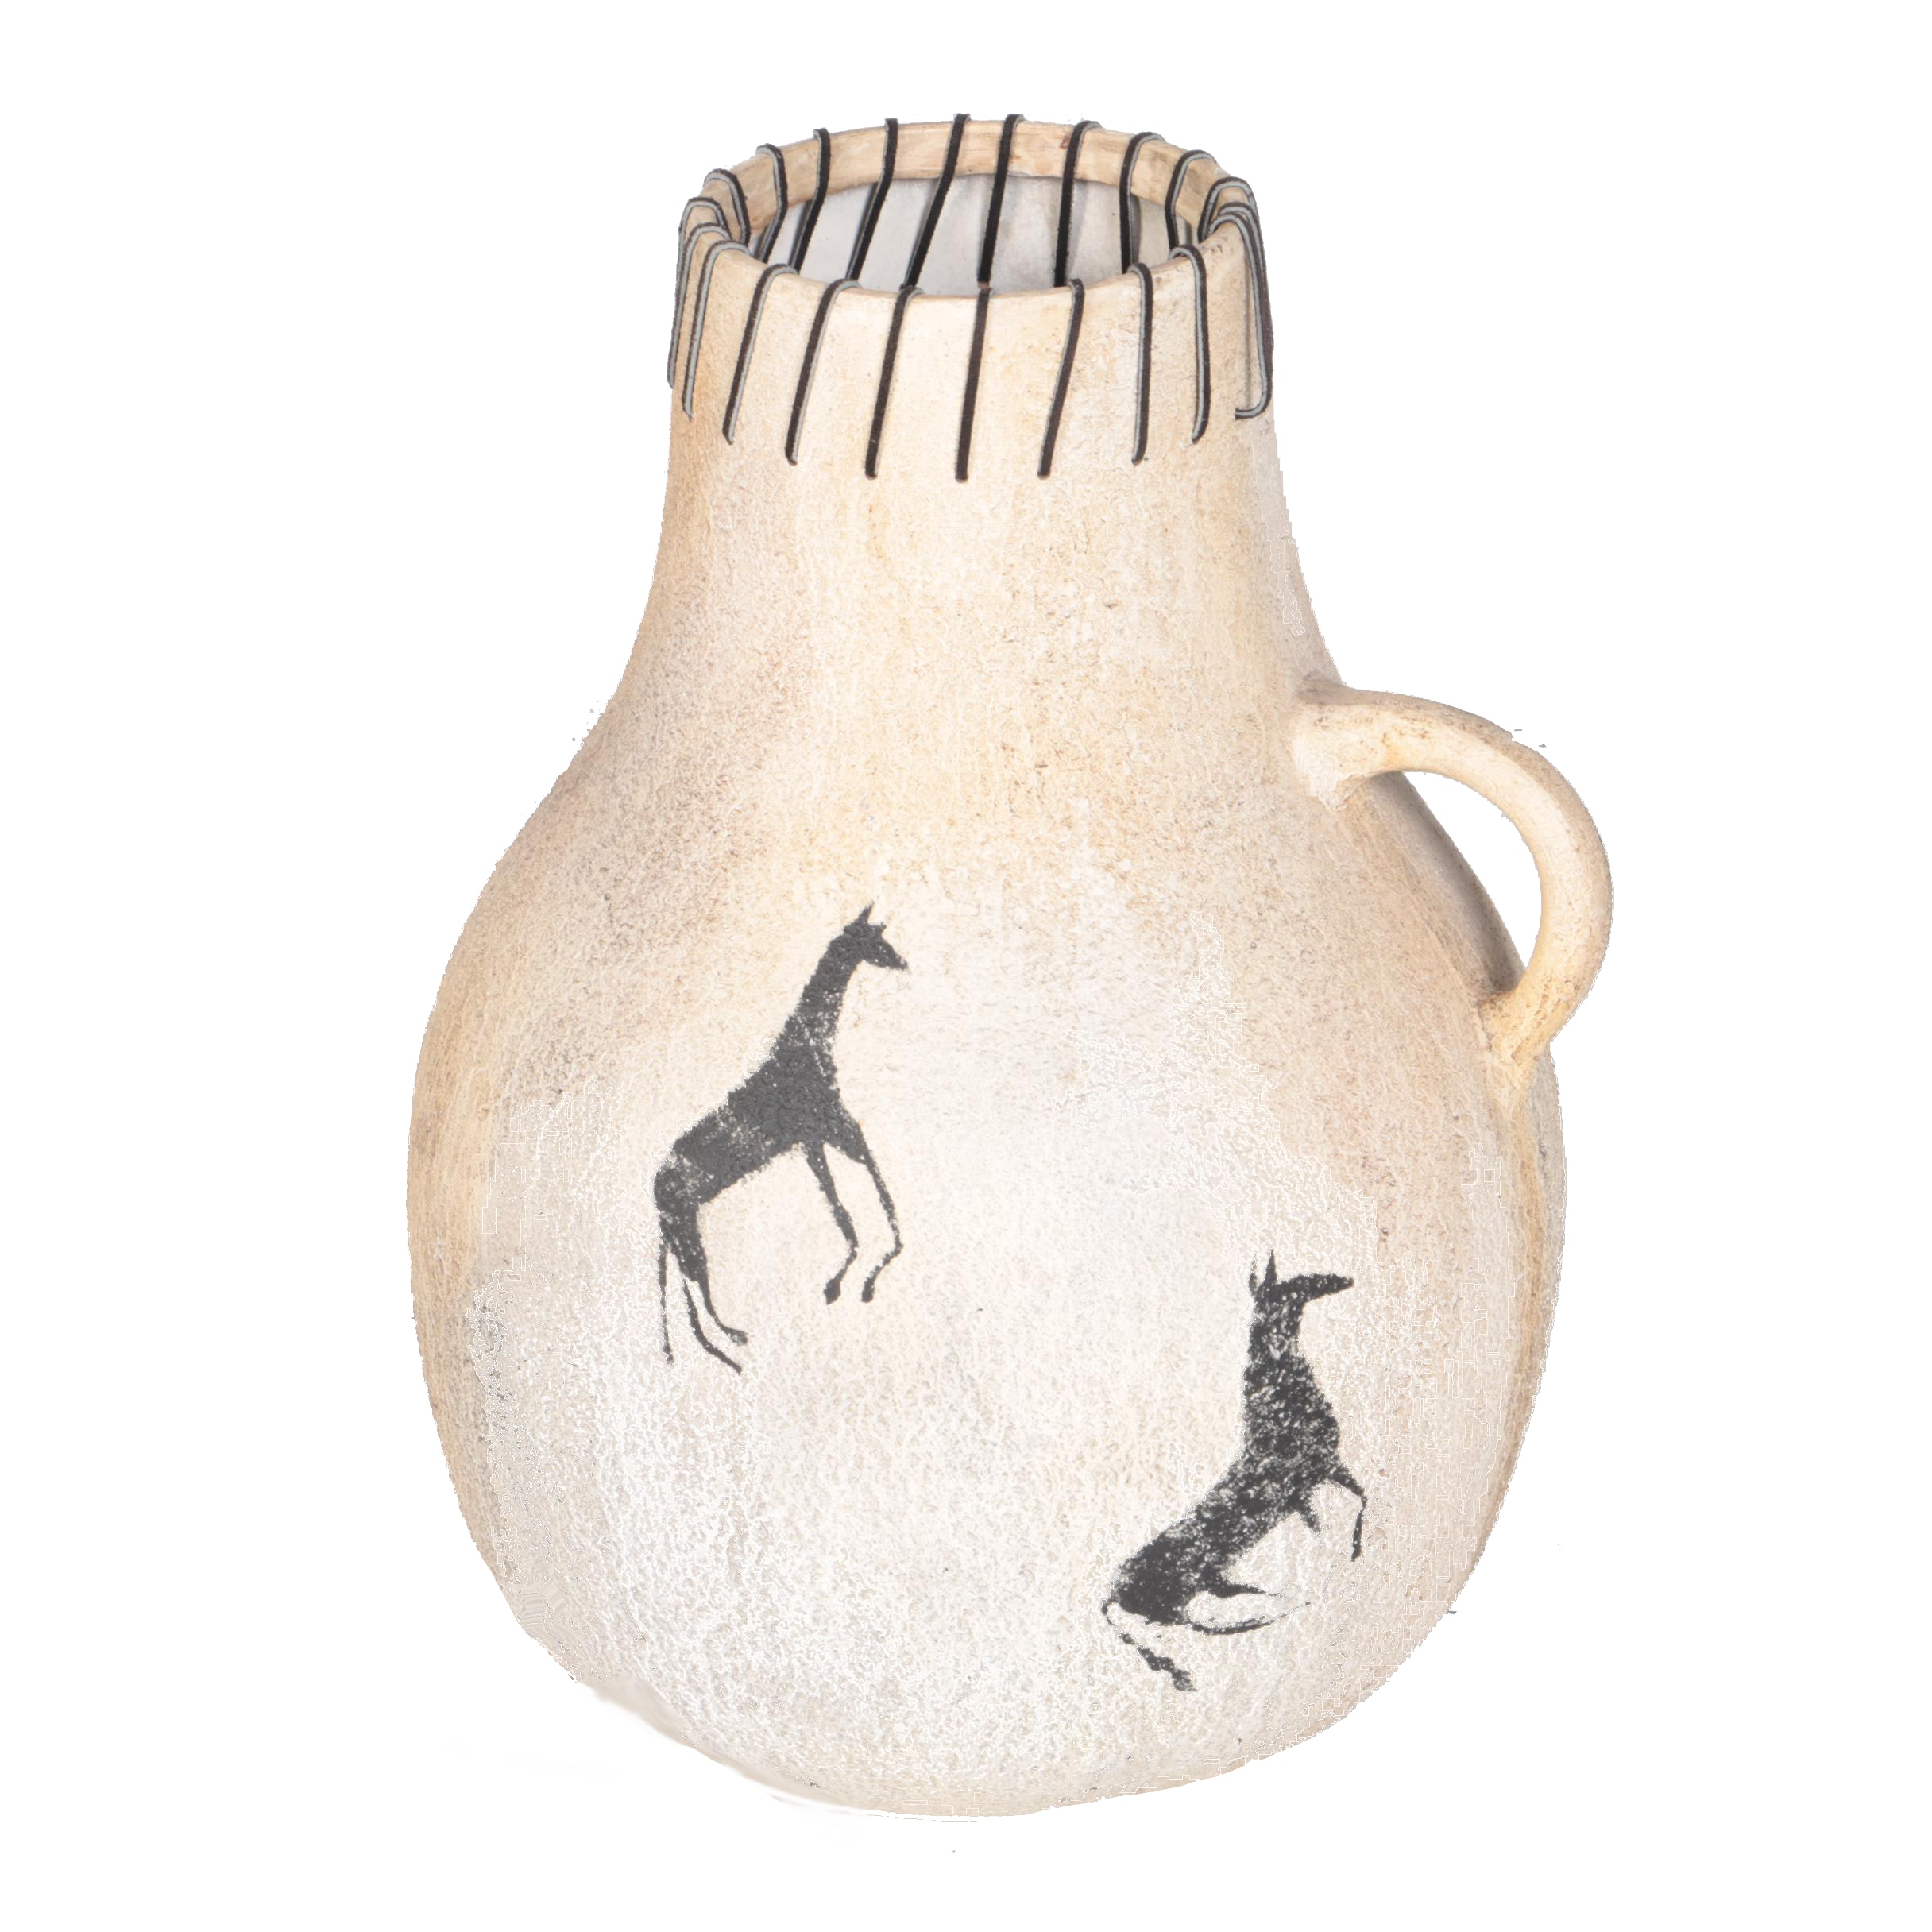 Native American Inspired Gourd Shaped Ceramic Vase by Guild Master